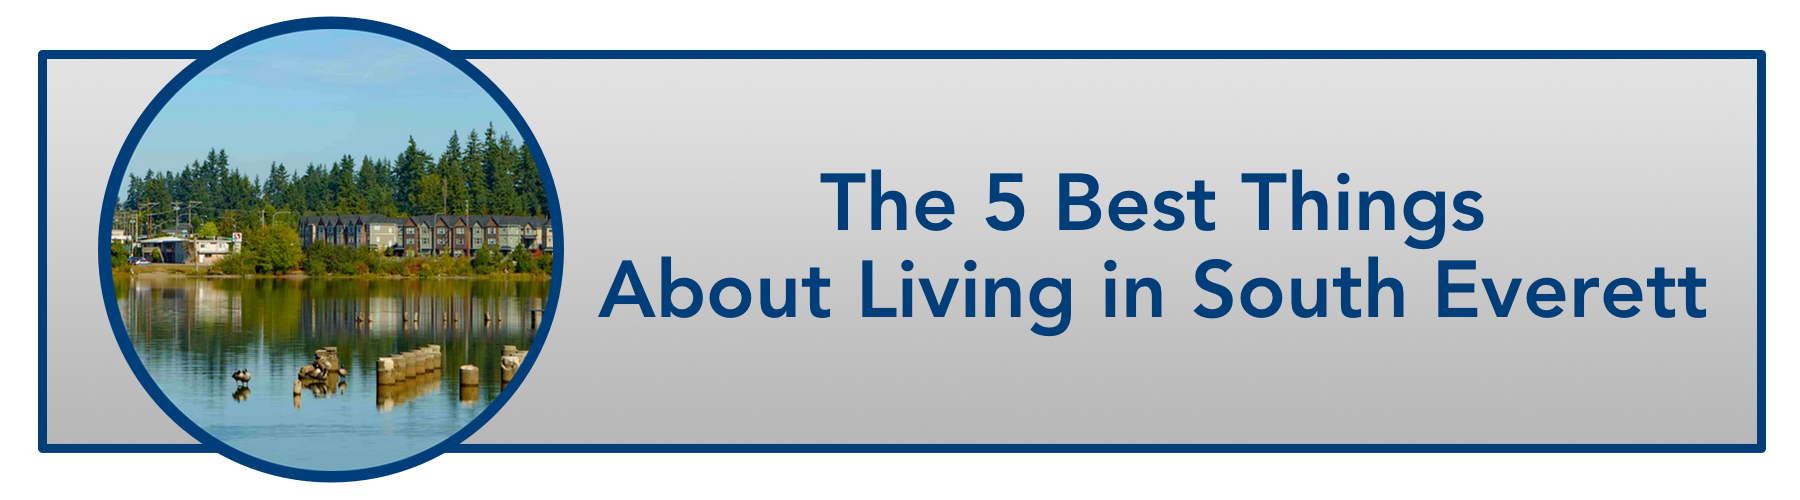 WindermereNorth_SouthEverett_The 5 Best Things About Living in South Everett